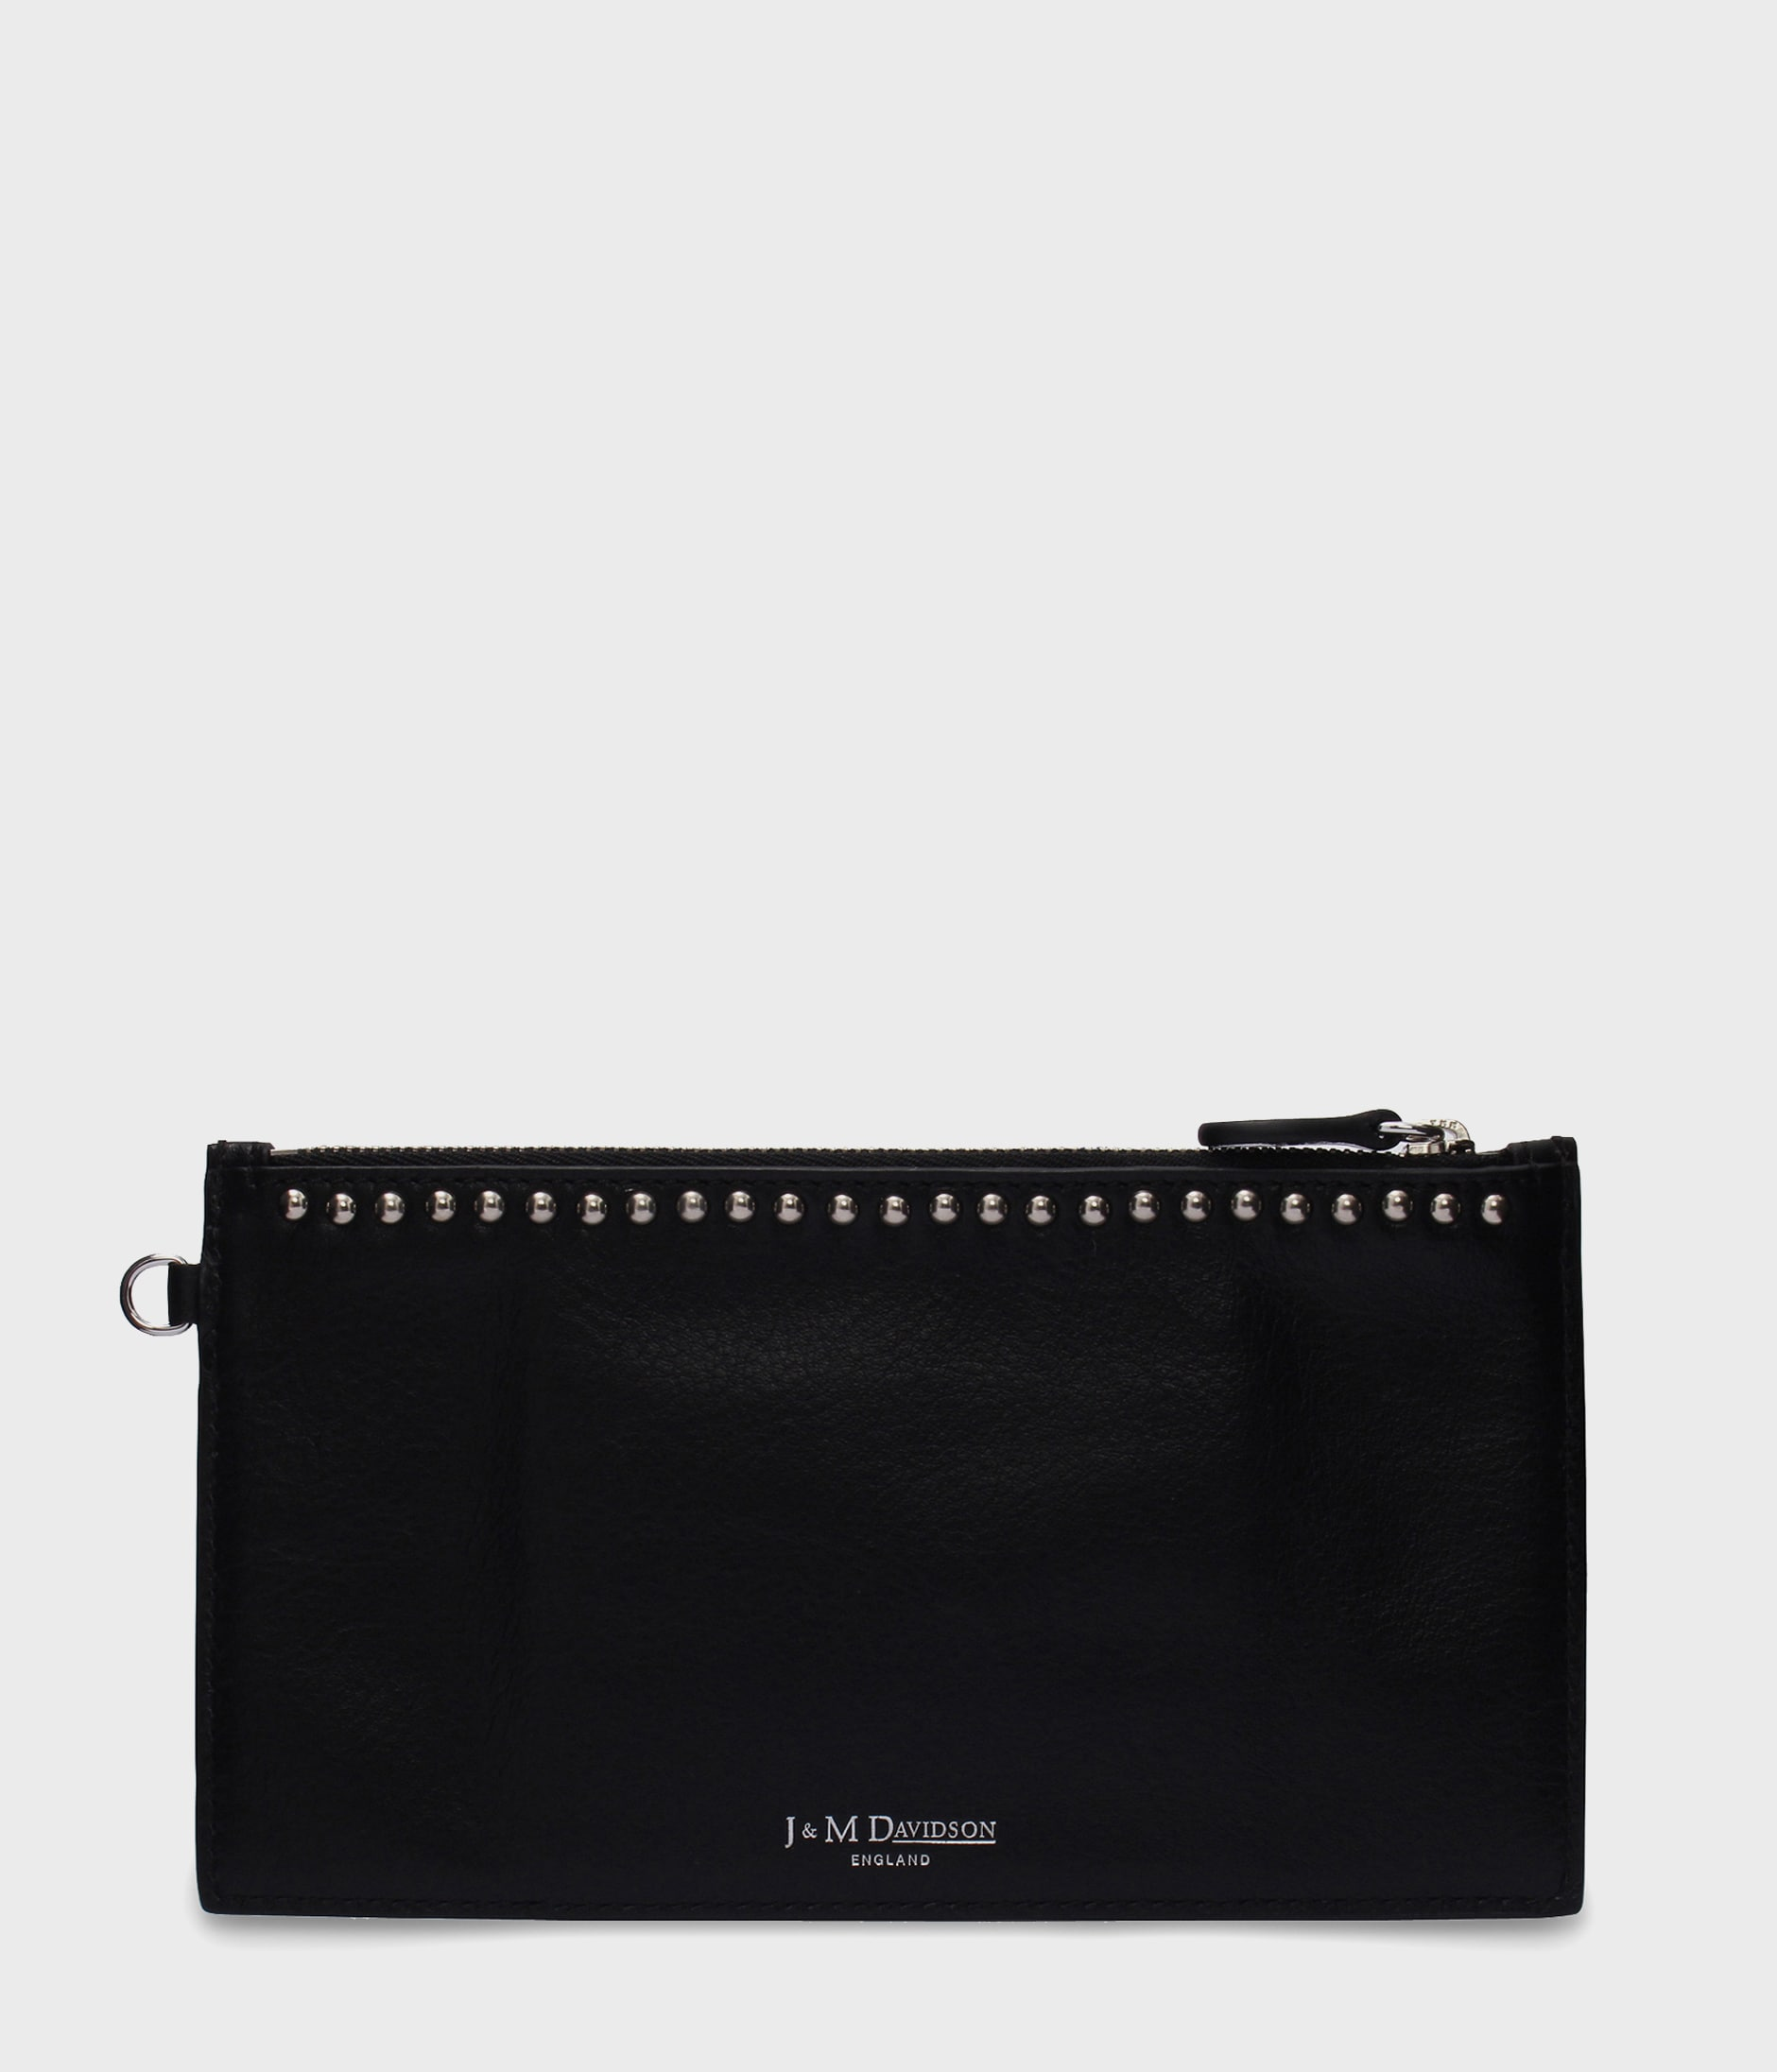 TRAVEL WALLET WITH STUDS 詳細画像 BLACK 3